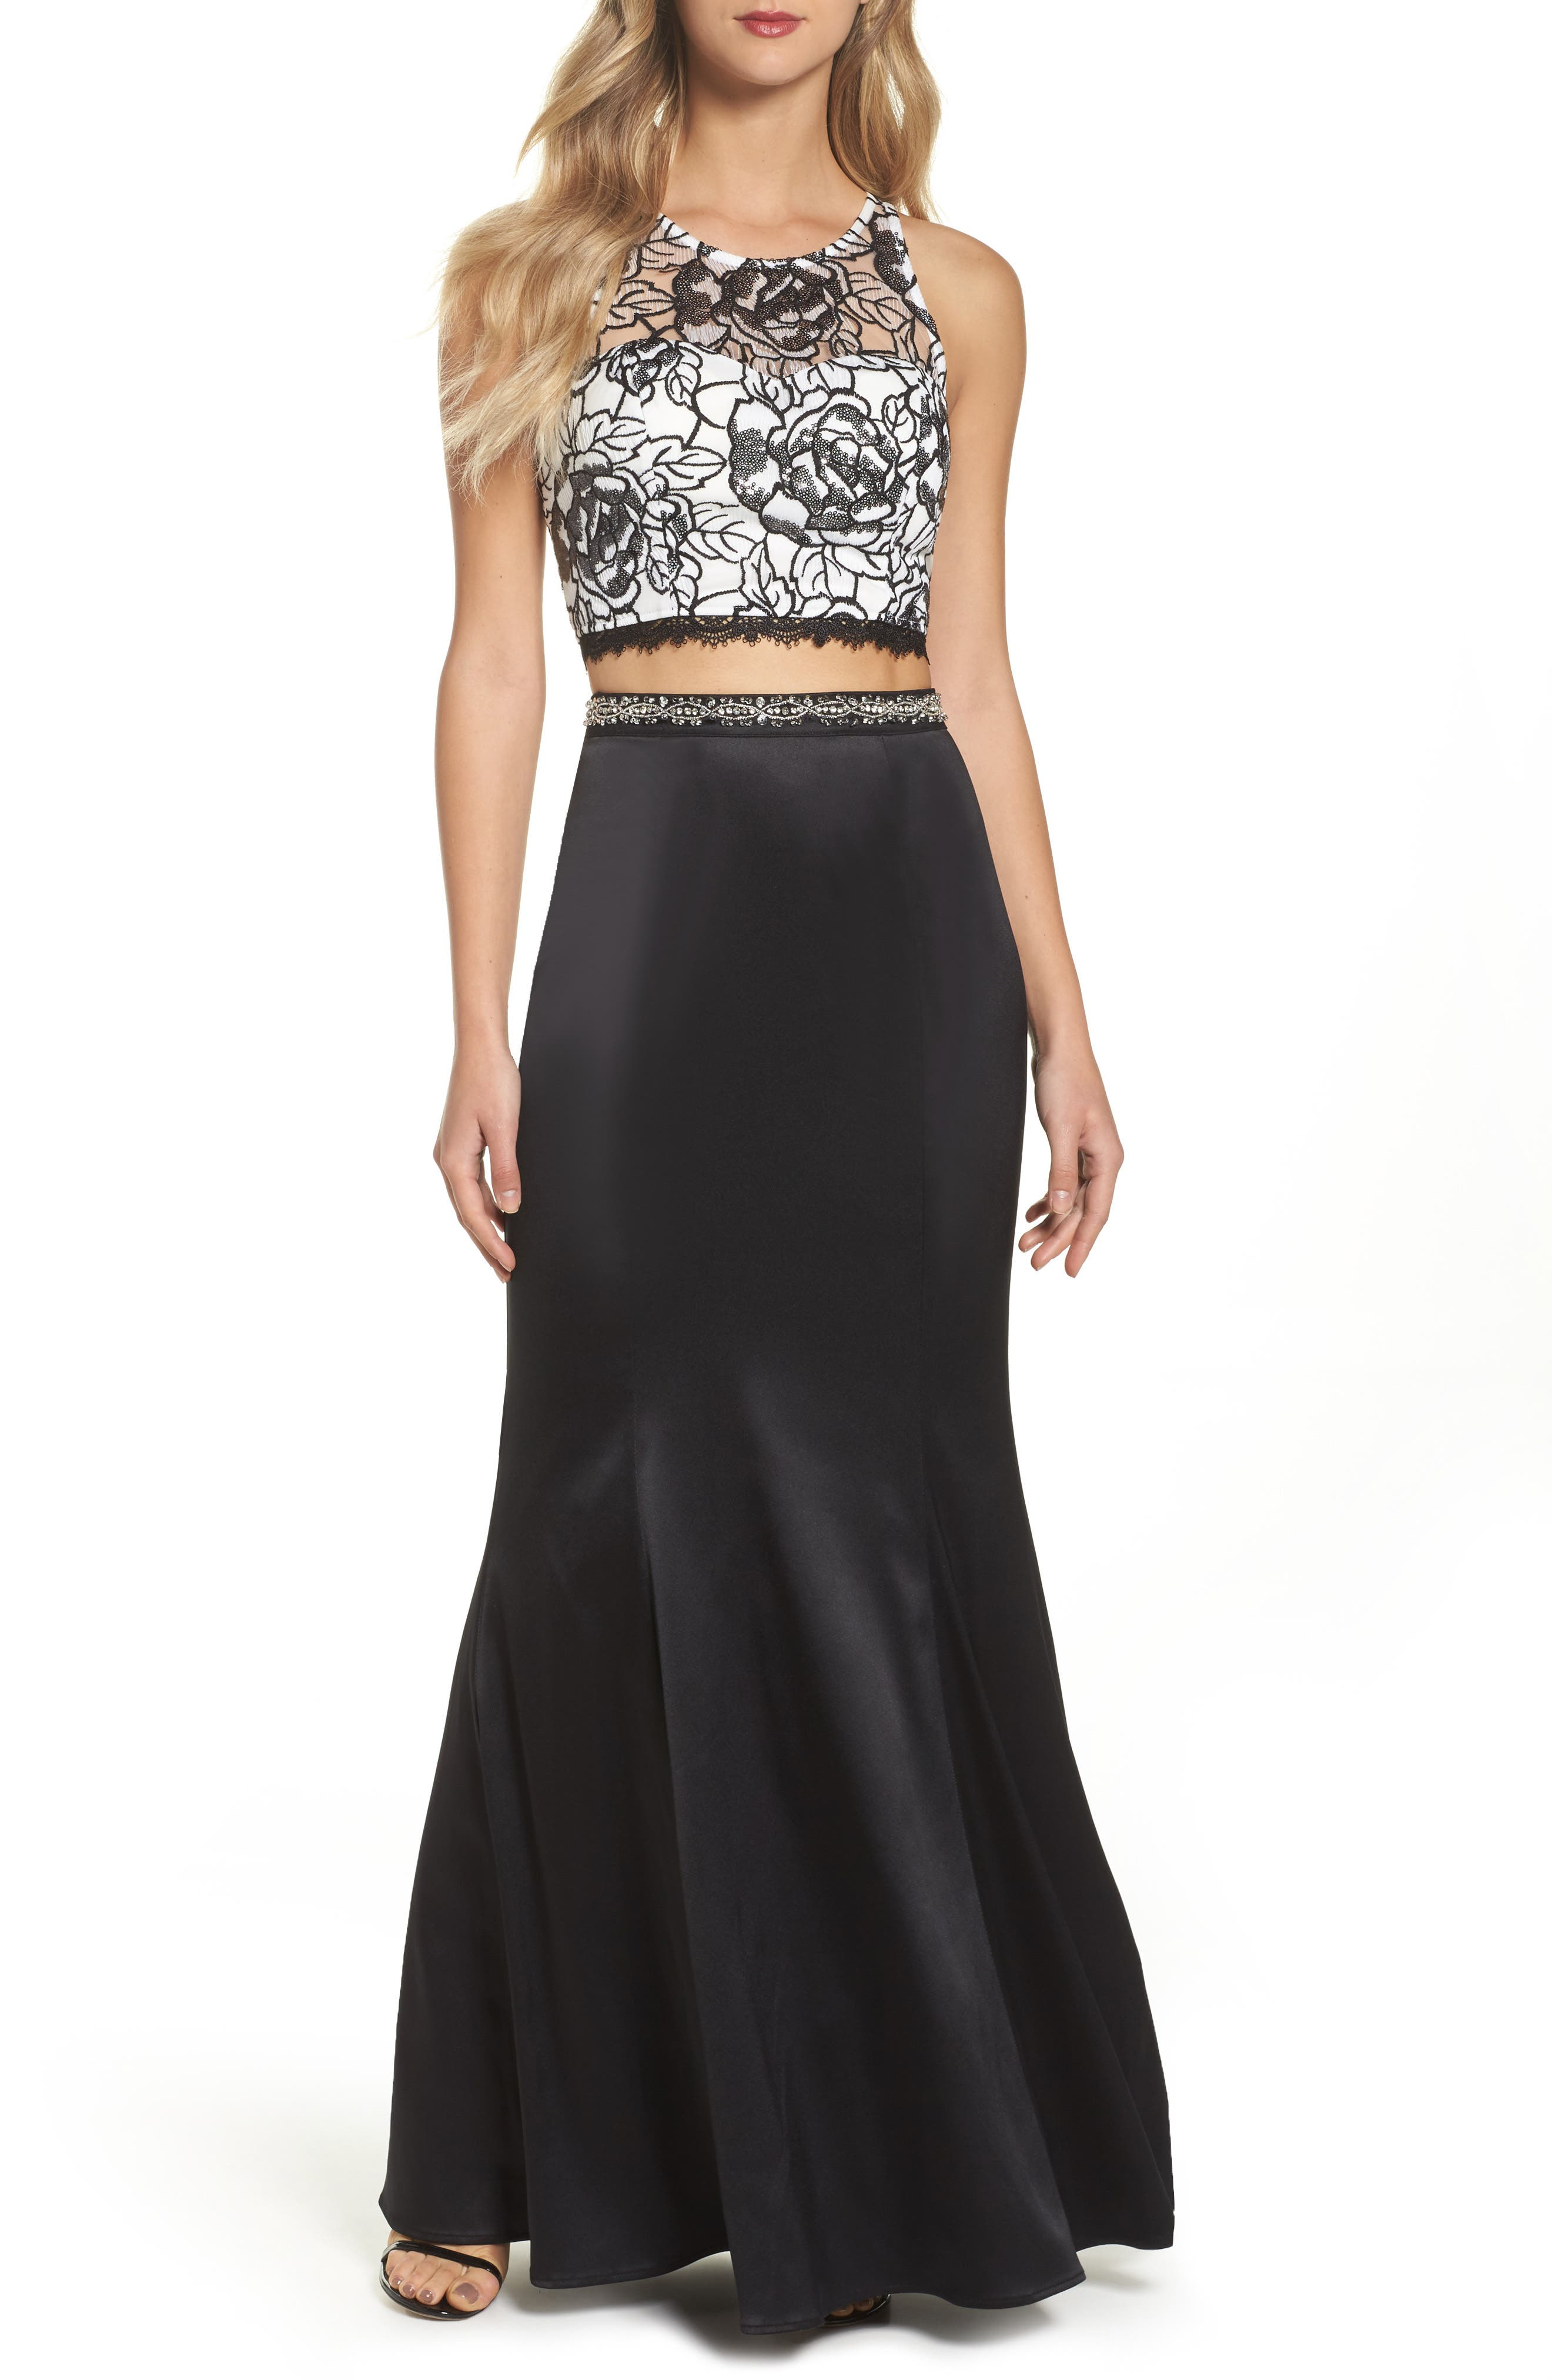 Sequin Hearts Sequined Lace Two-Piece Gown